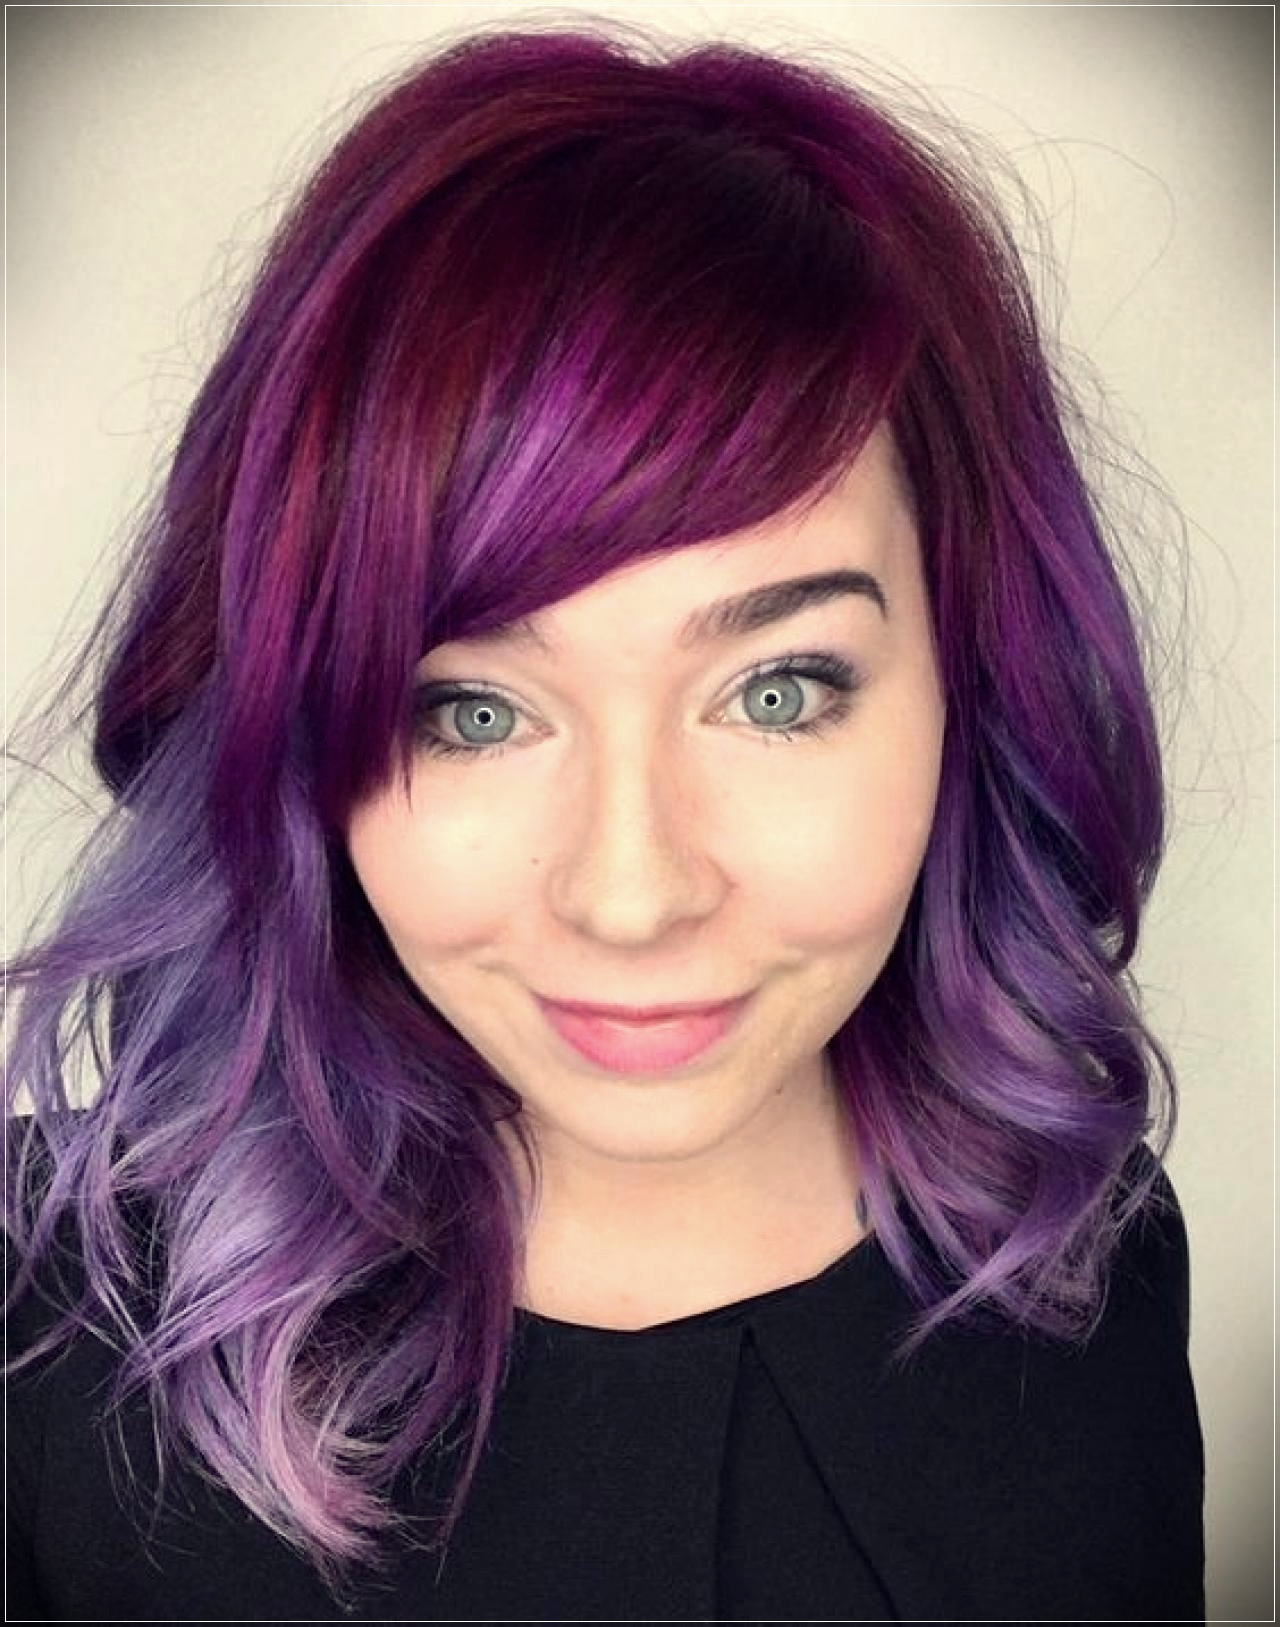 Some useful ombre hair ideas for short hair - ombre hair ideas for short hair 11